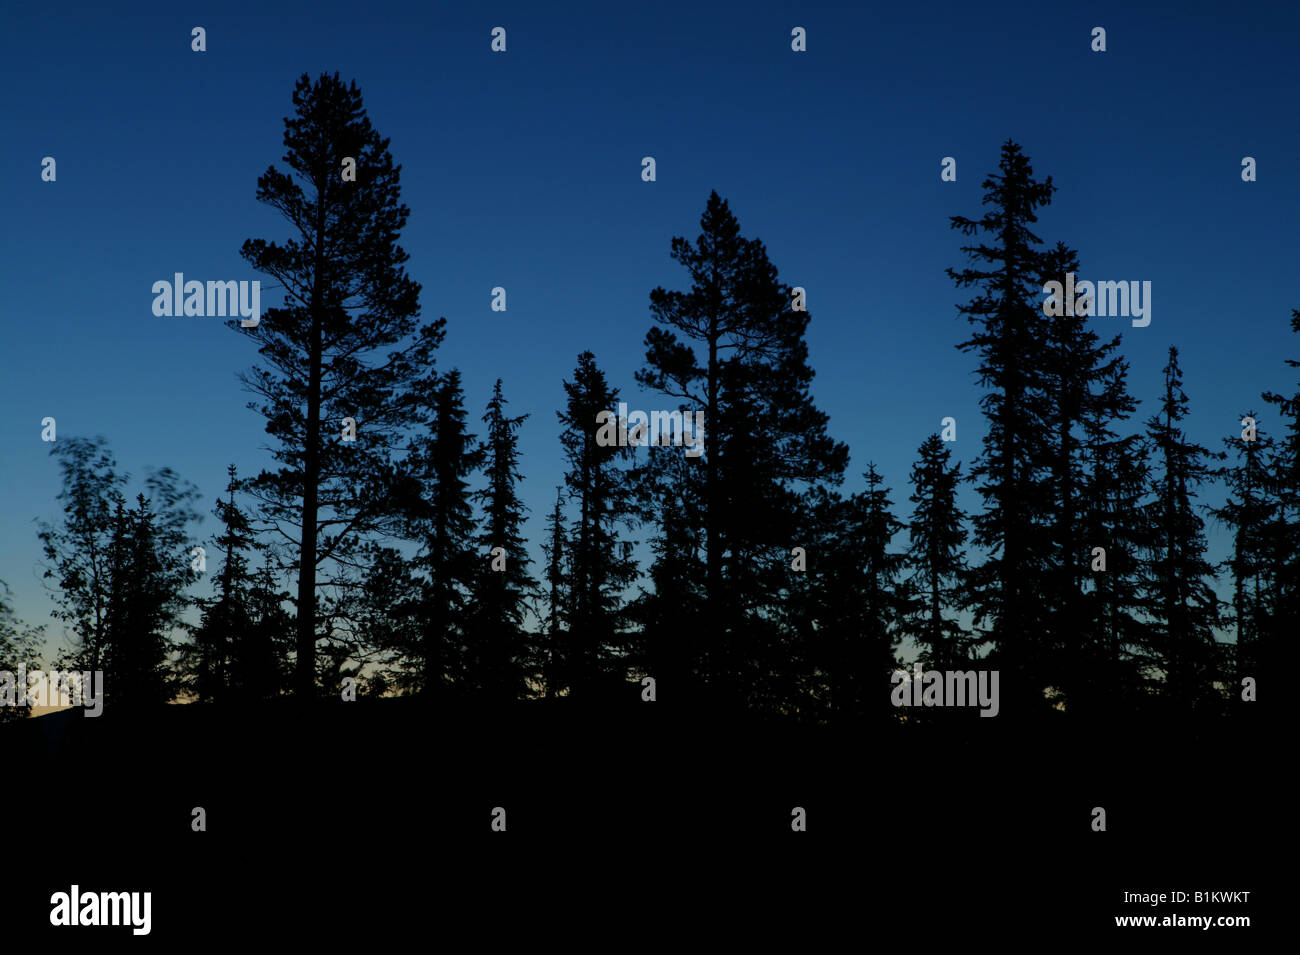 Forest at night at the mountain Andersnatten in Eggedal, Buskerud fylke, Norway. - Stock Image